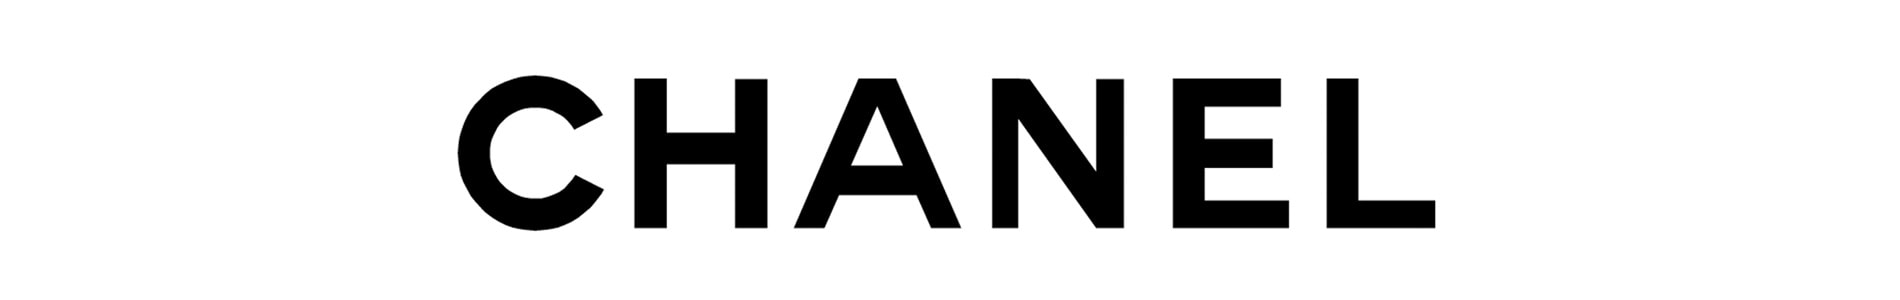 Chanel Sunglasses Company Logo